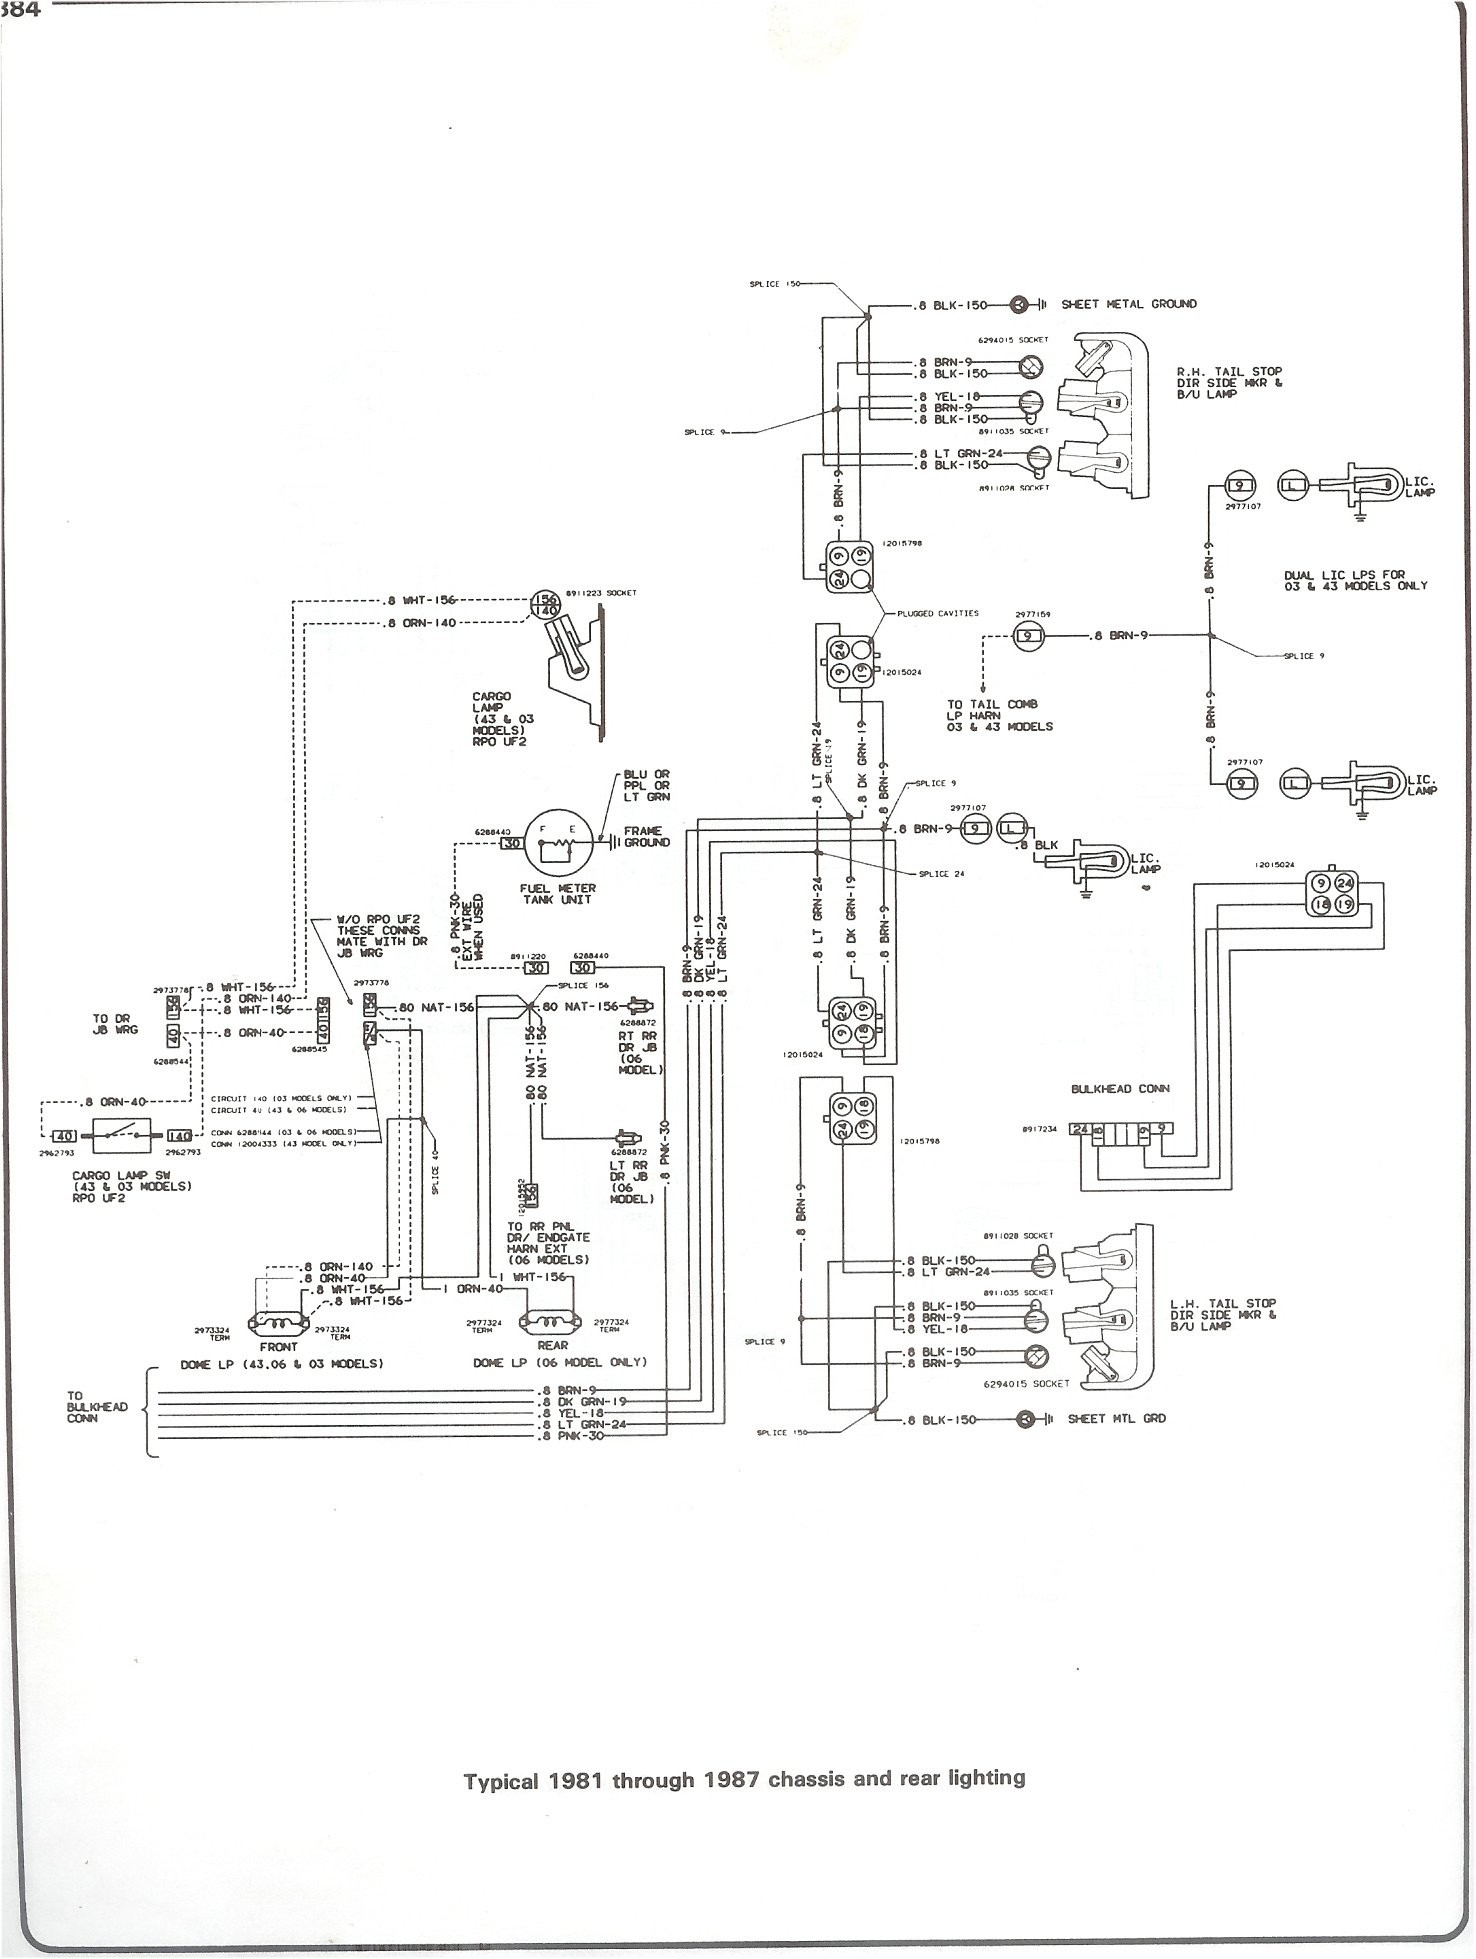 1985 Chevy K10 Fuse Box Diagram